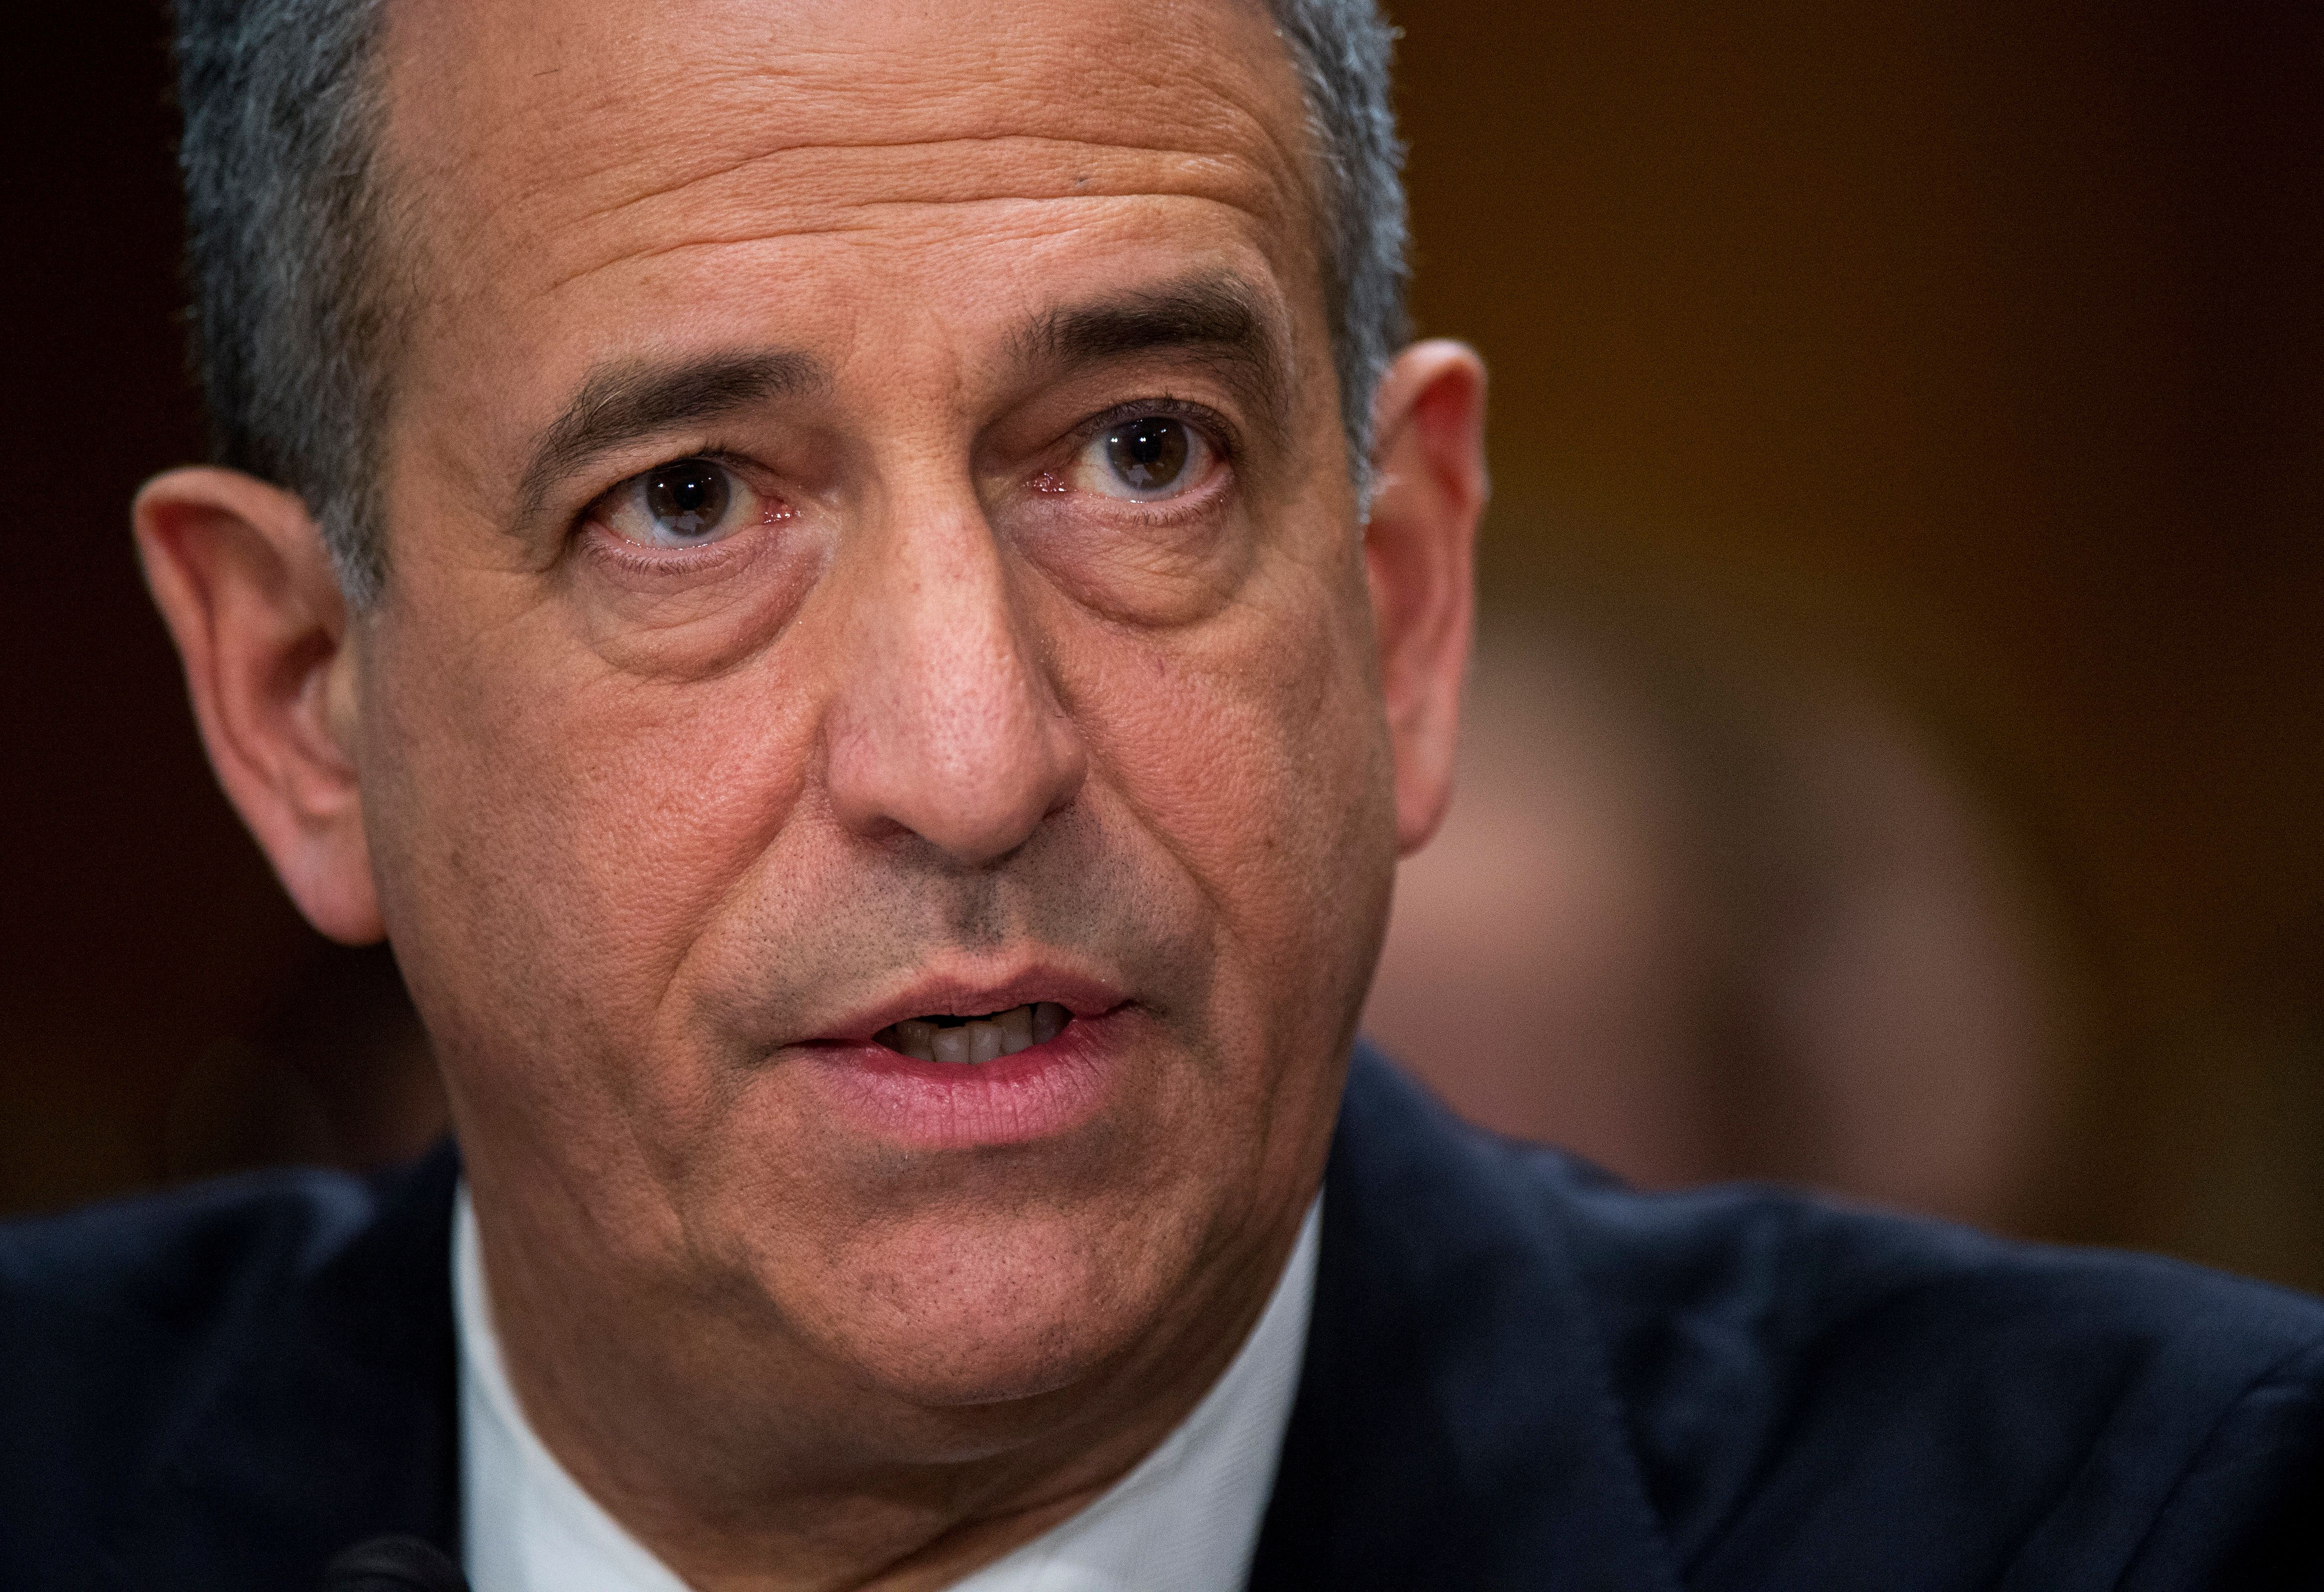 Progressive Democrat Russ Feingold is fighting to retake his former Senate seat from Republican Ron Johnson.